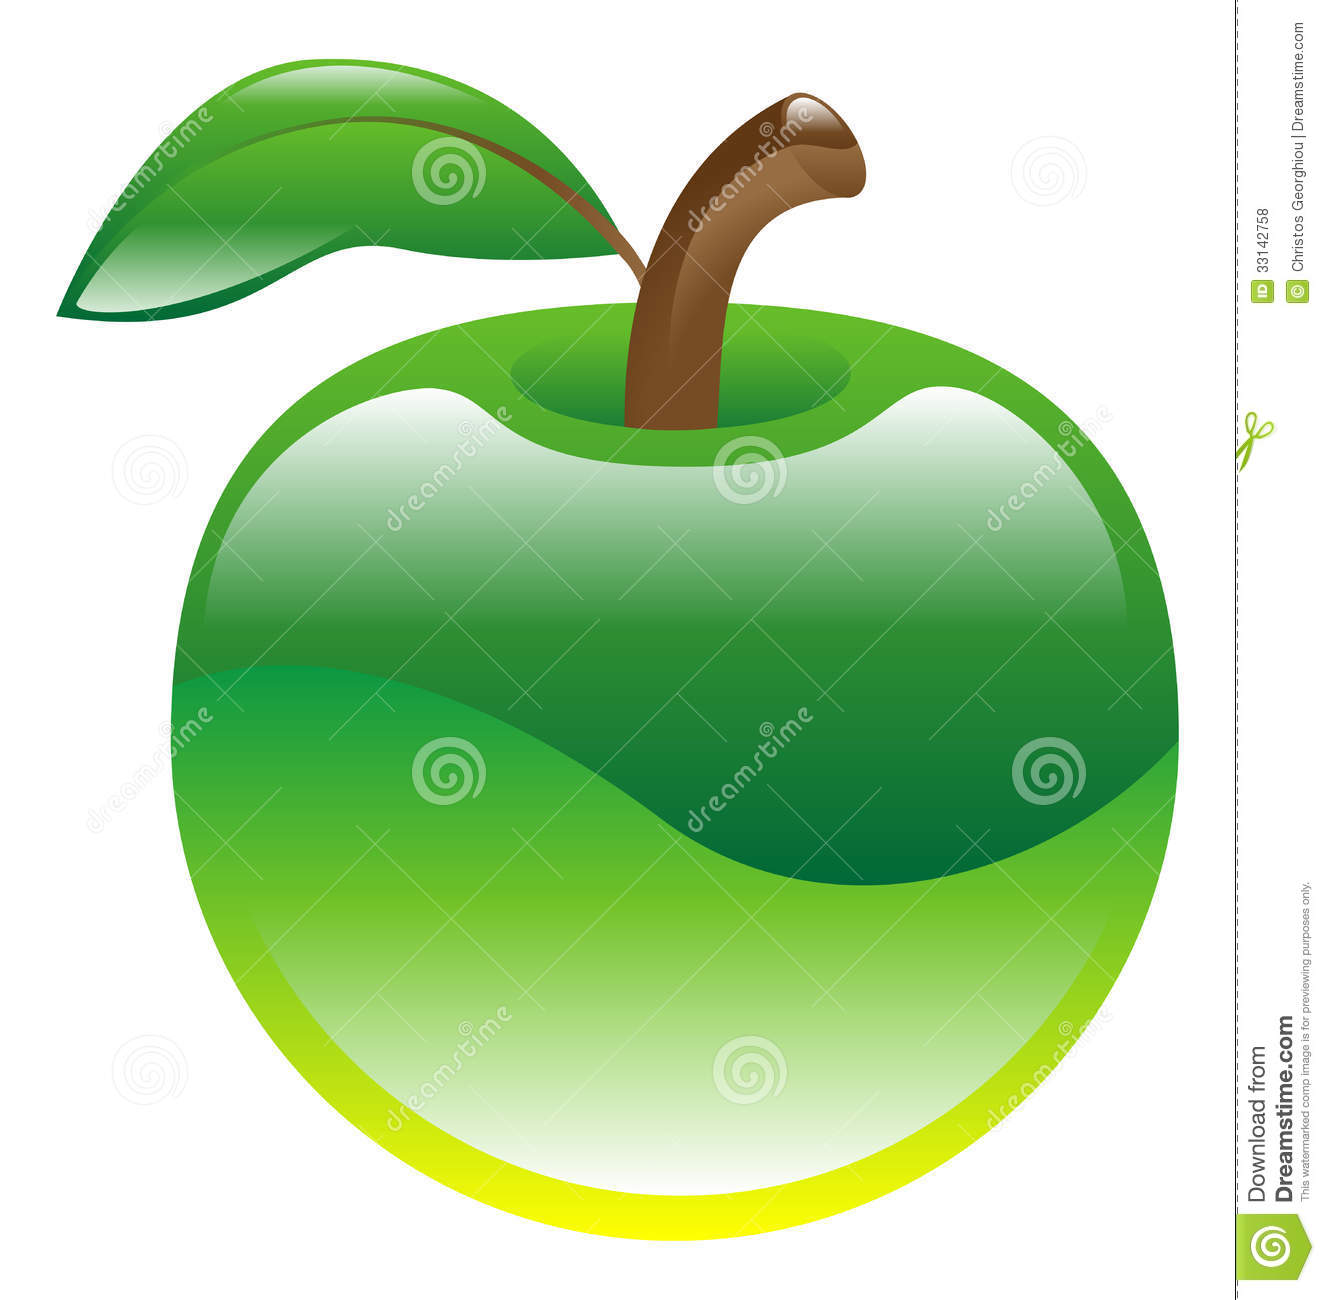 Green Apple Clipart Illustration Apple Fruit Icon Clipart Green